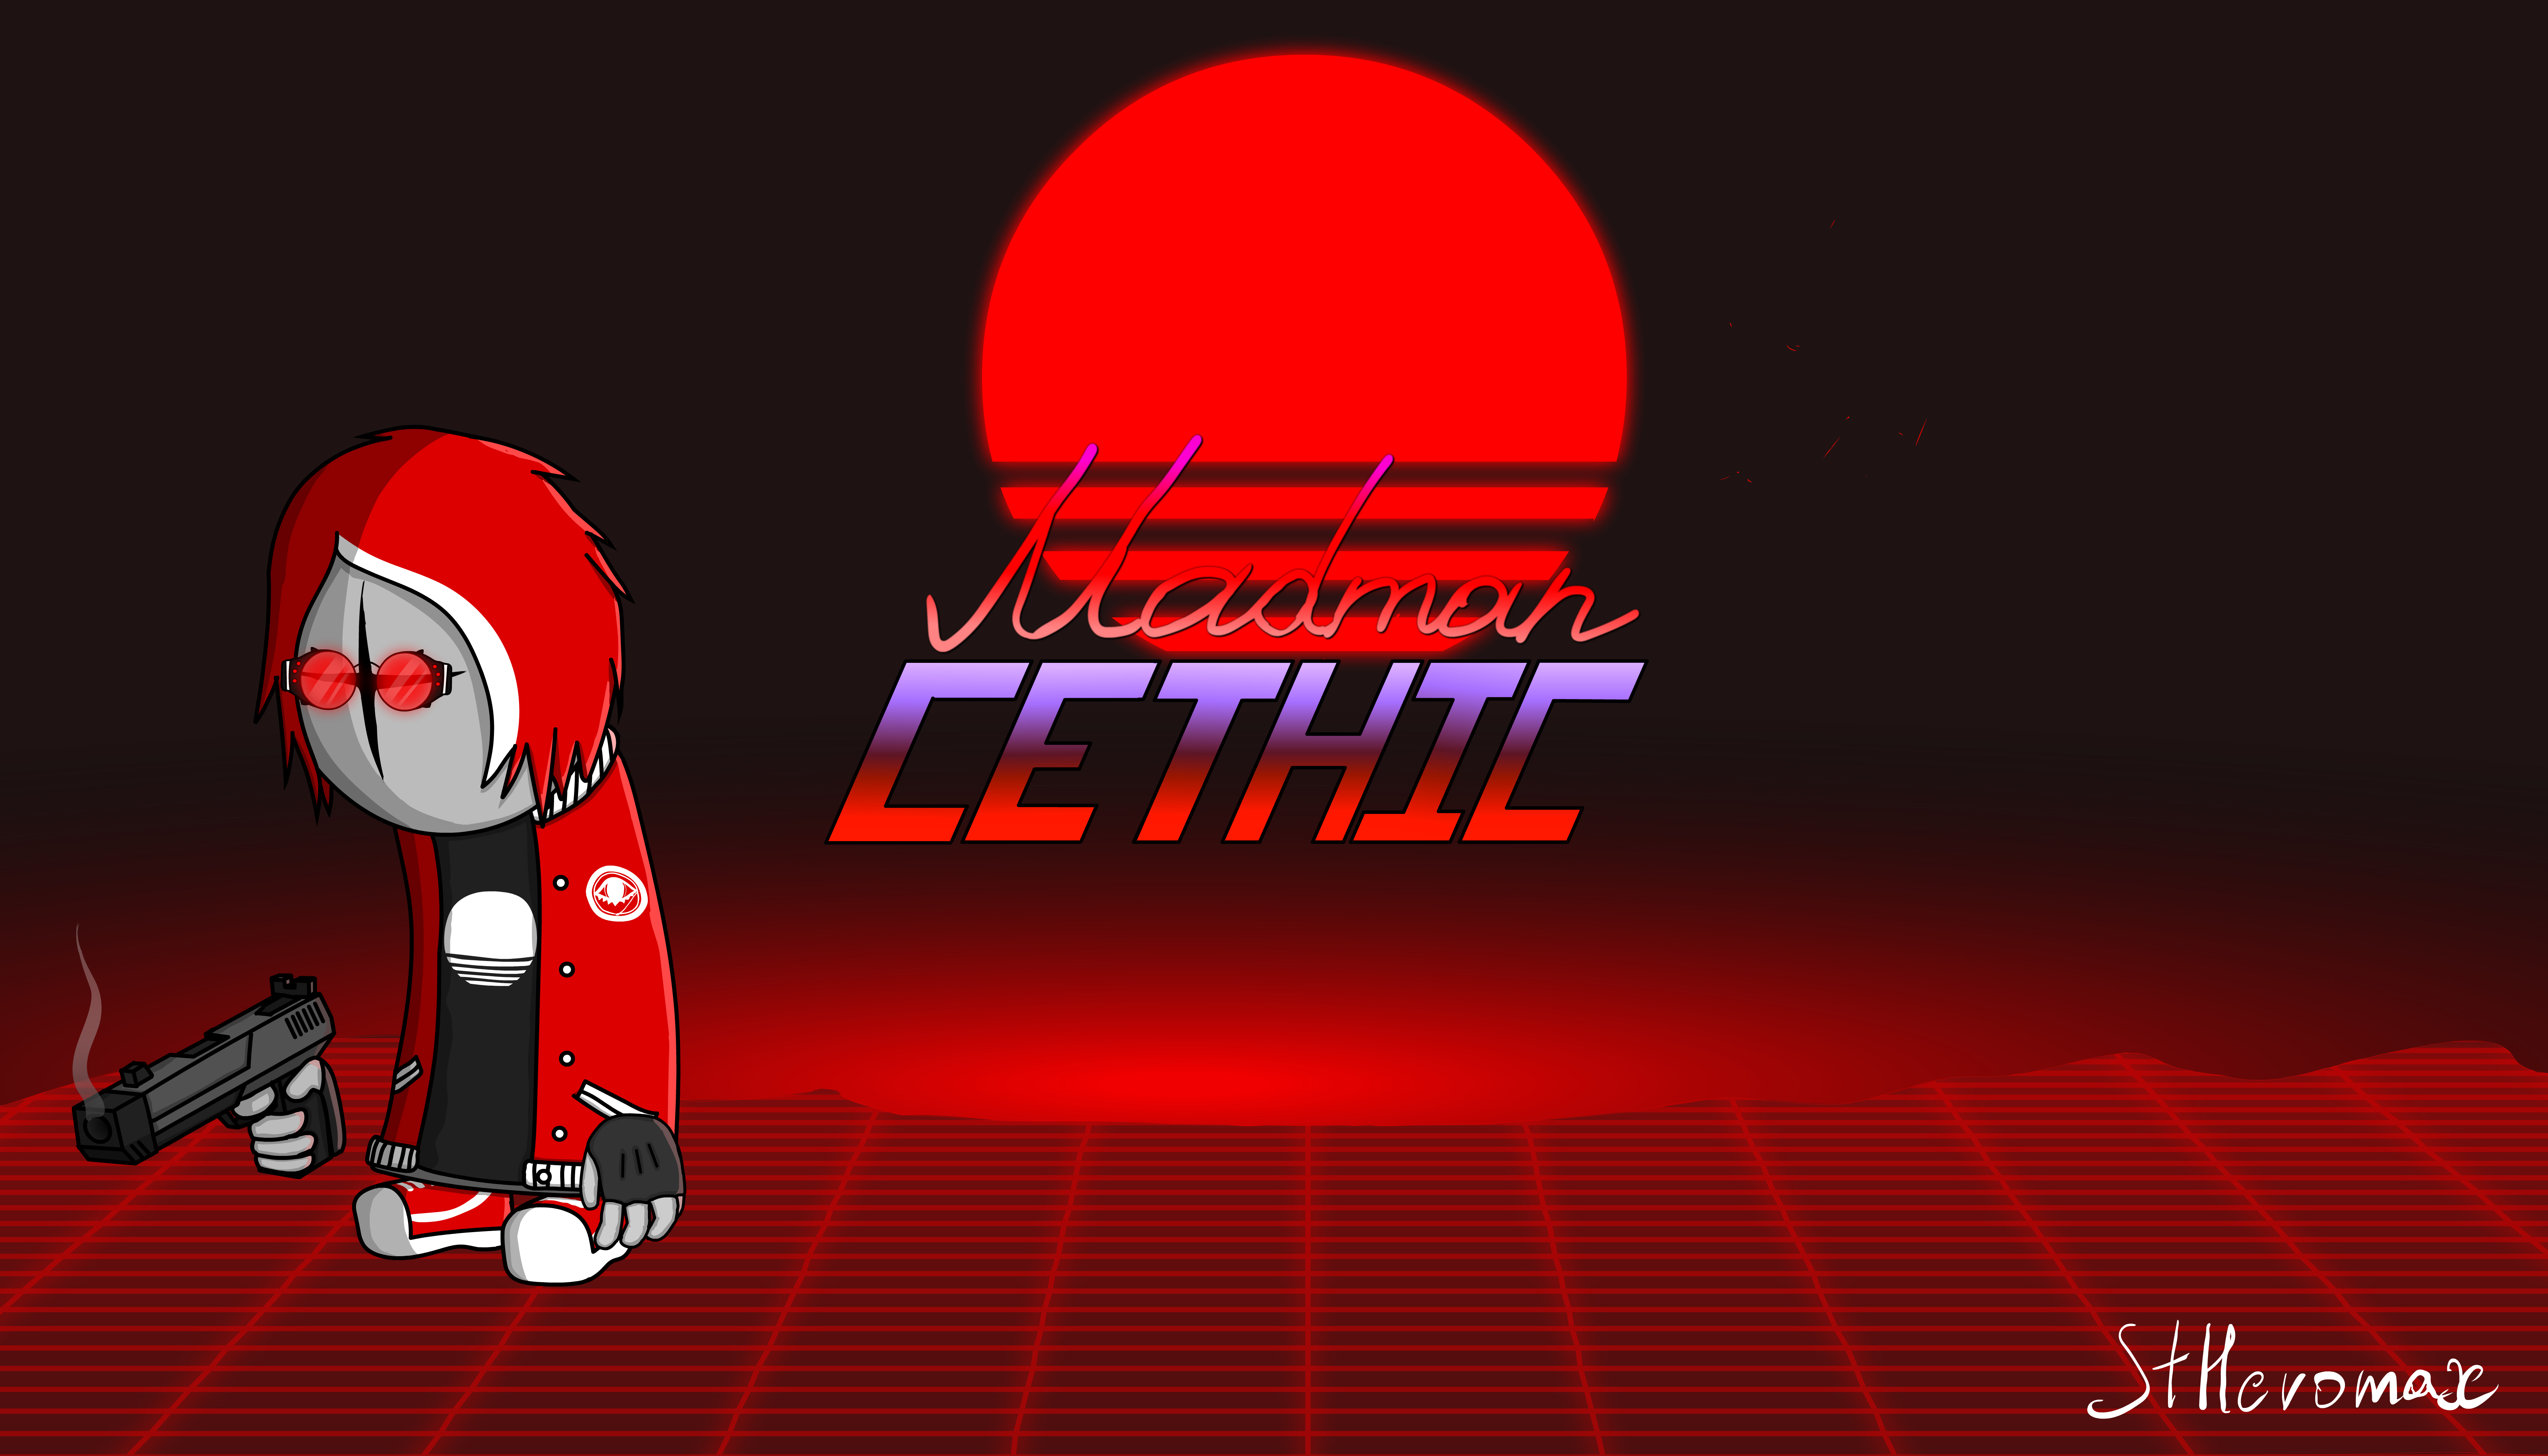 Cethic